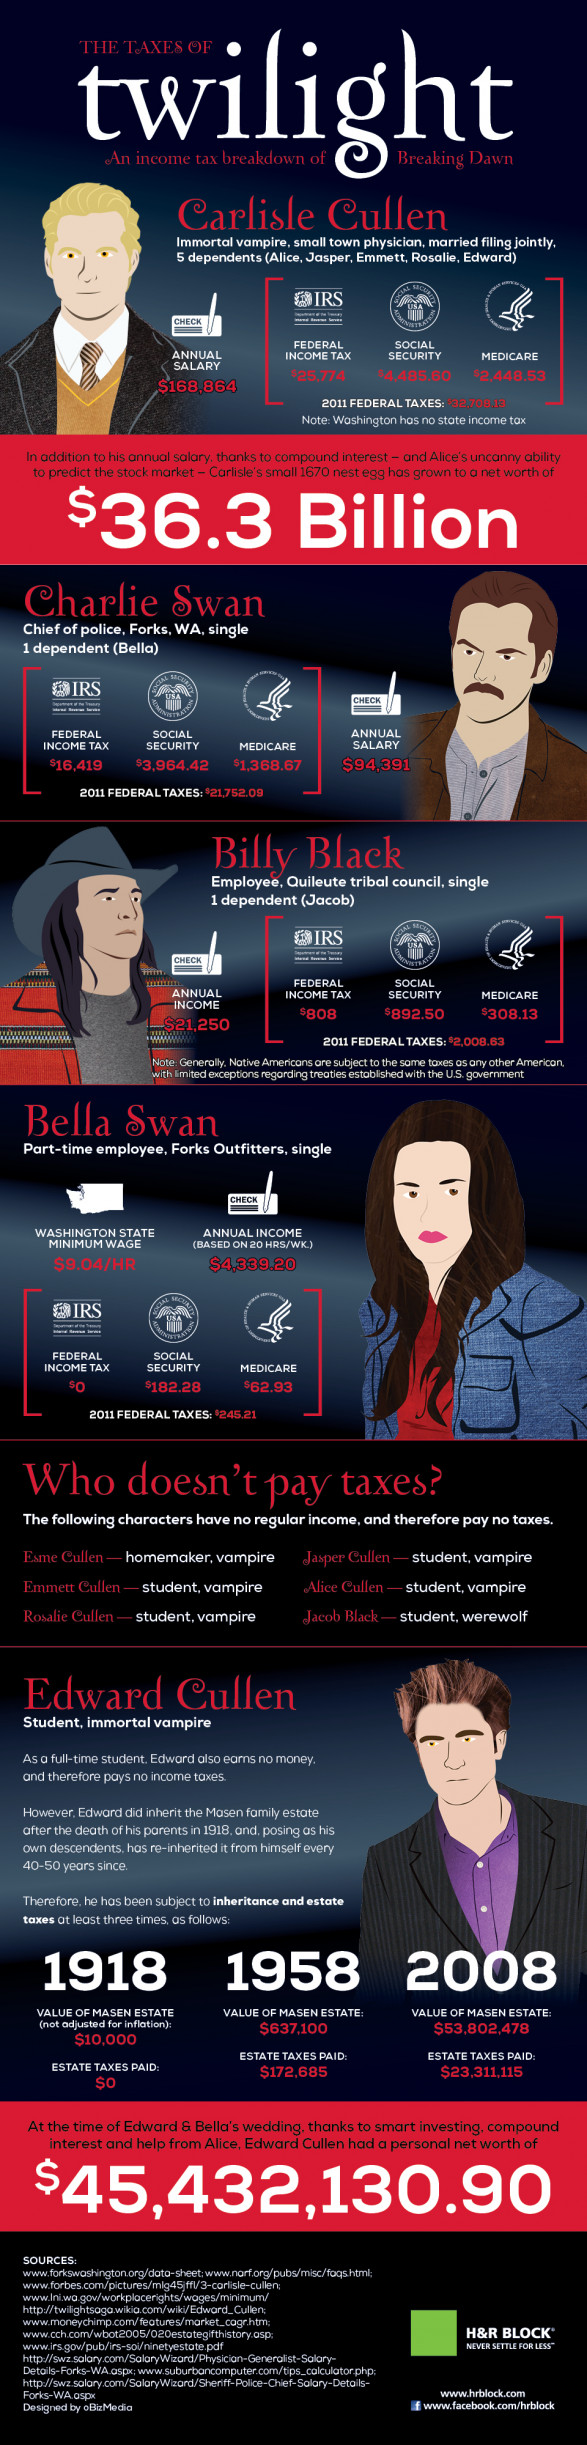 If Twilight Characters Filed Taxes...